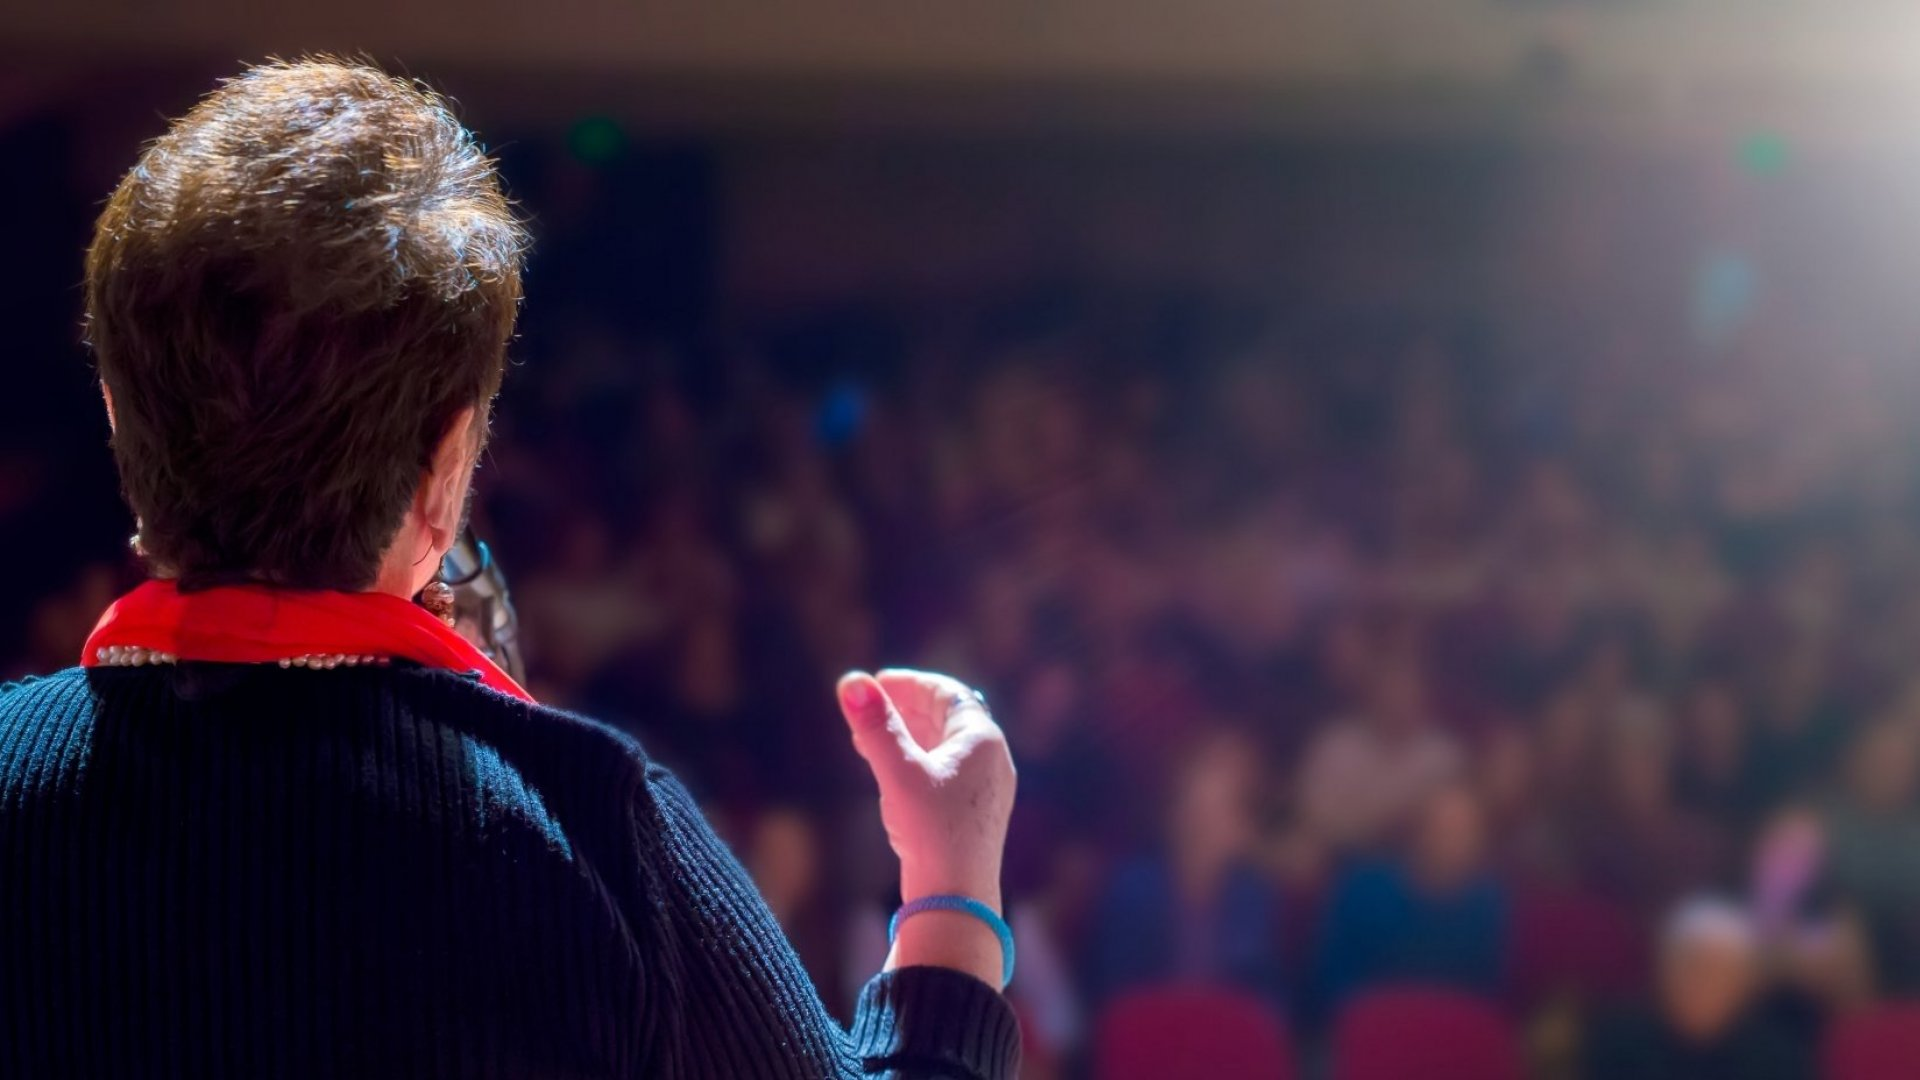 Following The Counterintuitive 'Rule of Reversal' Ensures Your Speech Will Impact Your Audience